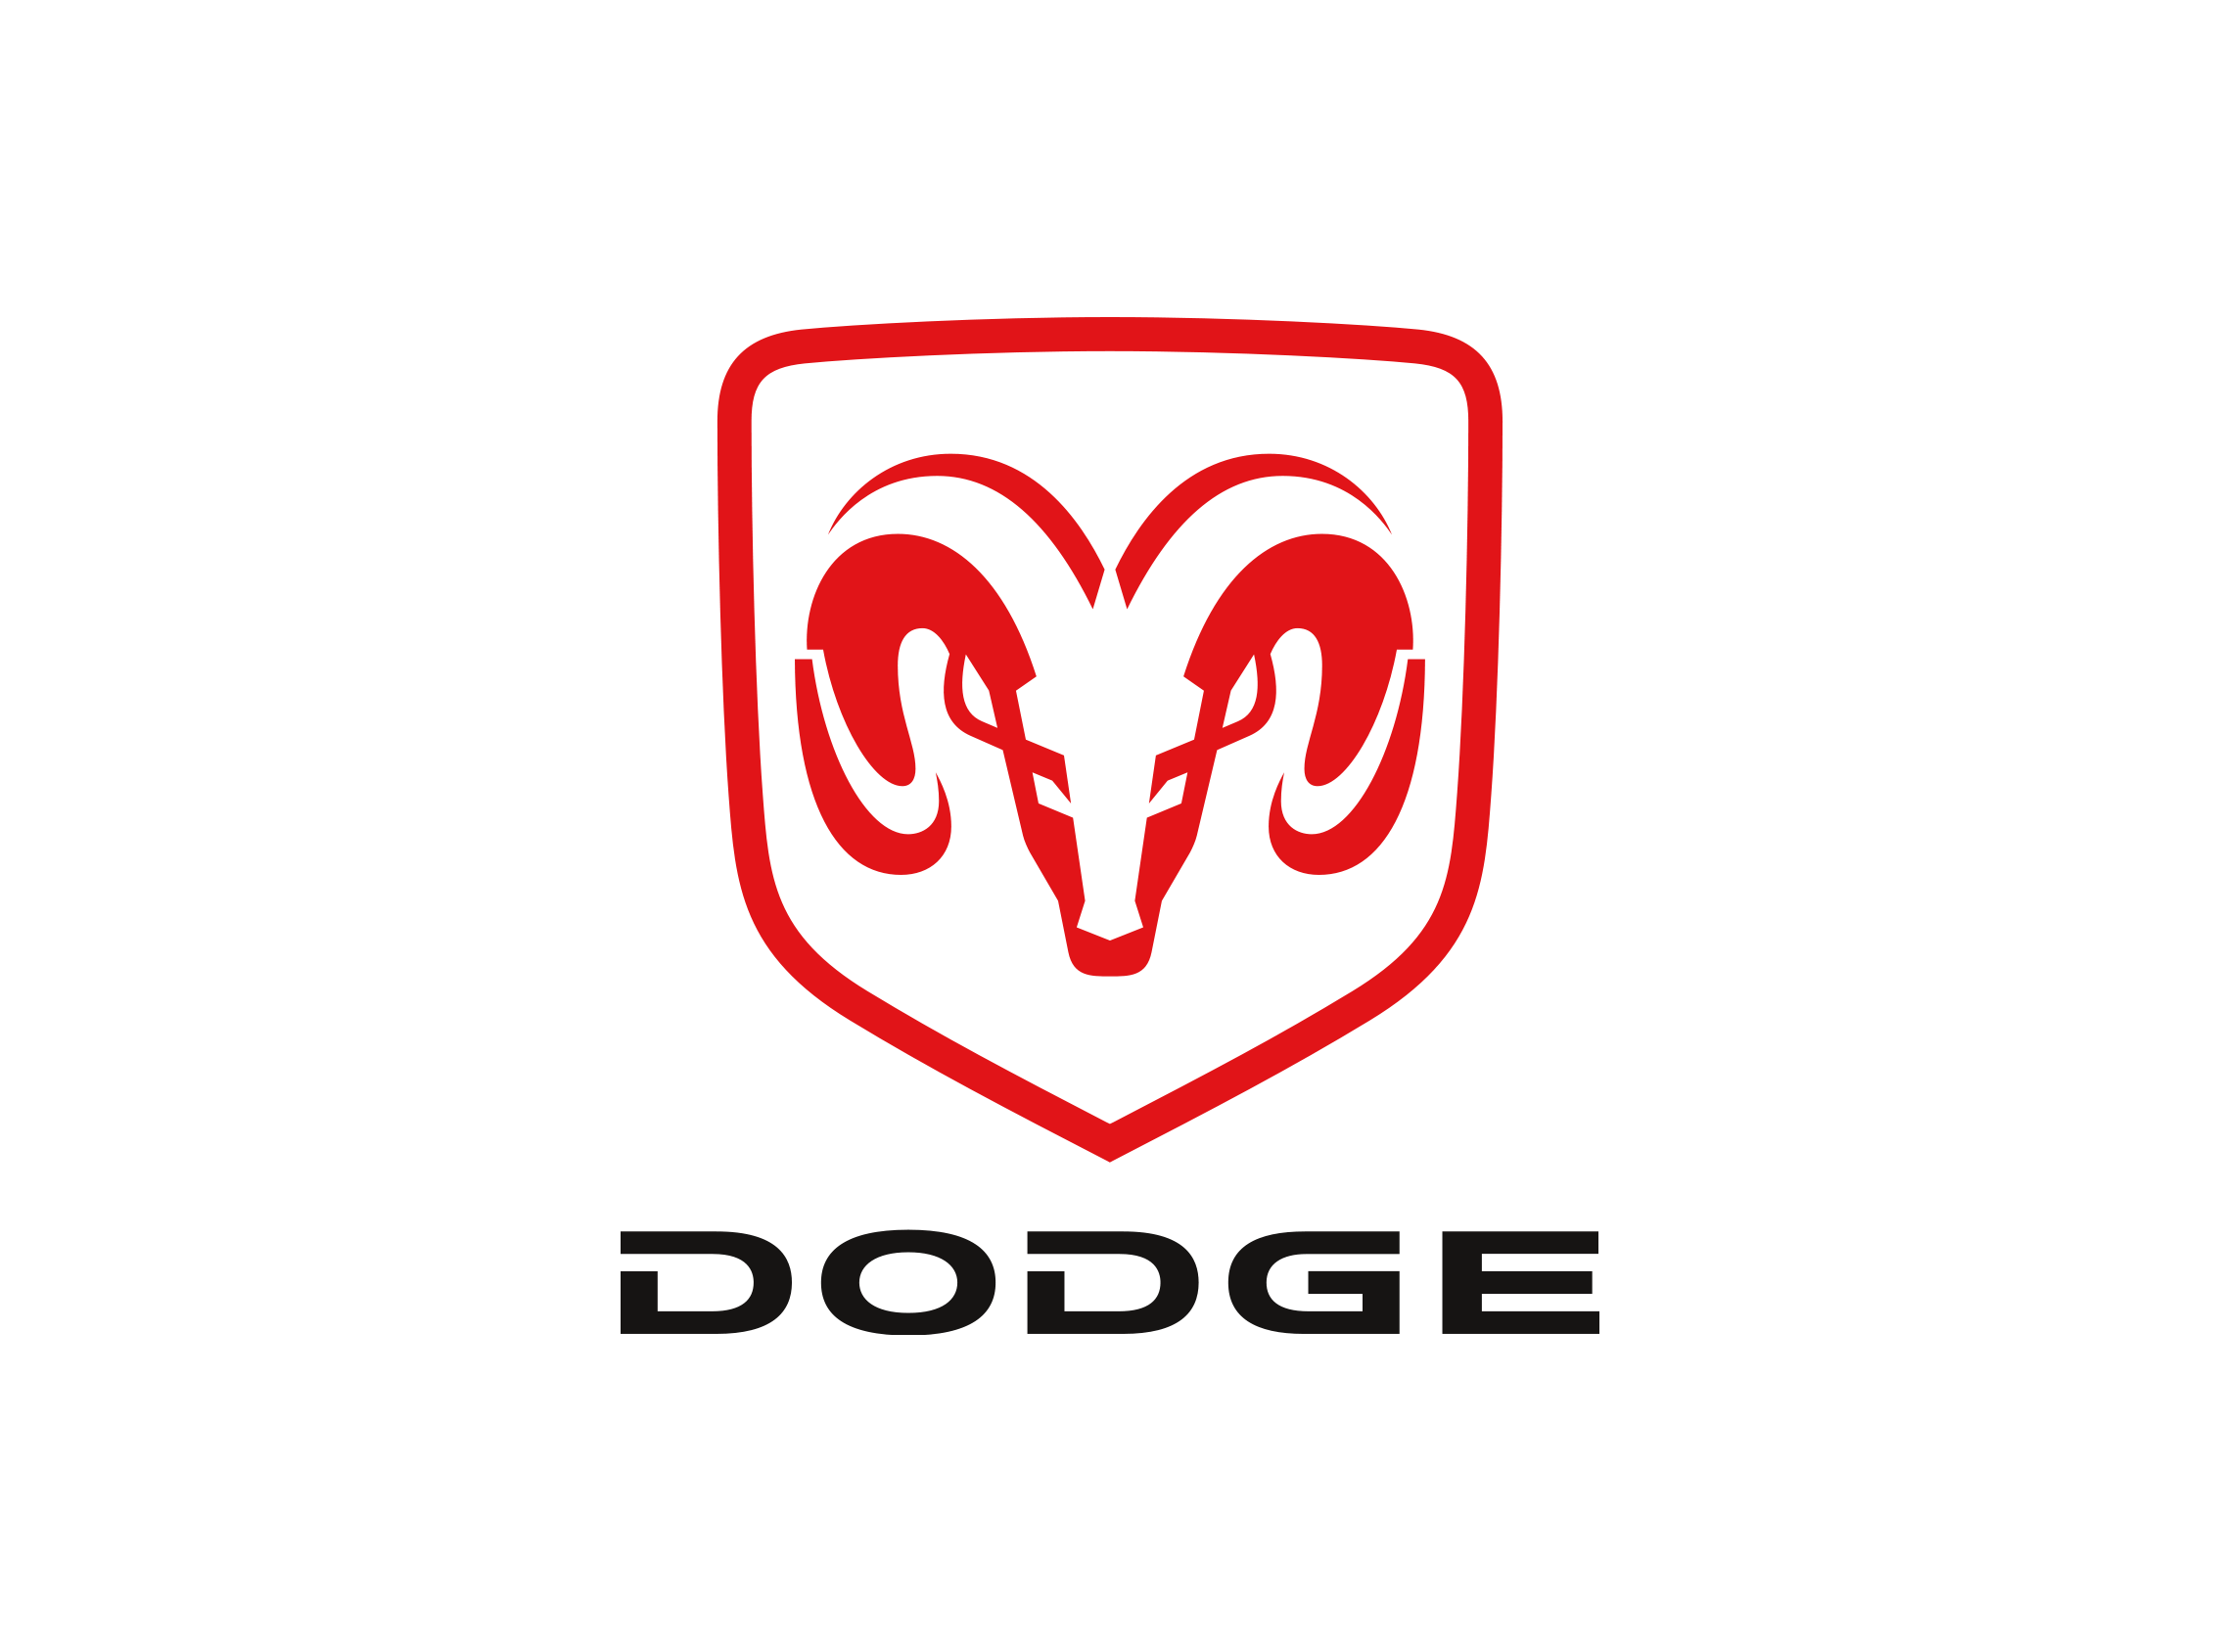 DODGE MOTOR IMPORT BRANDS VOITURE IMPORT USA MIAMI IMPORT VOITURE EUROP IMPORT USA MOTOR IMPORT7 - TOYOTA importation voiture des Etats Unis TOYOTA votre mandataire automobile usa